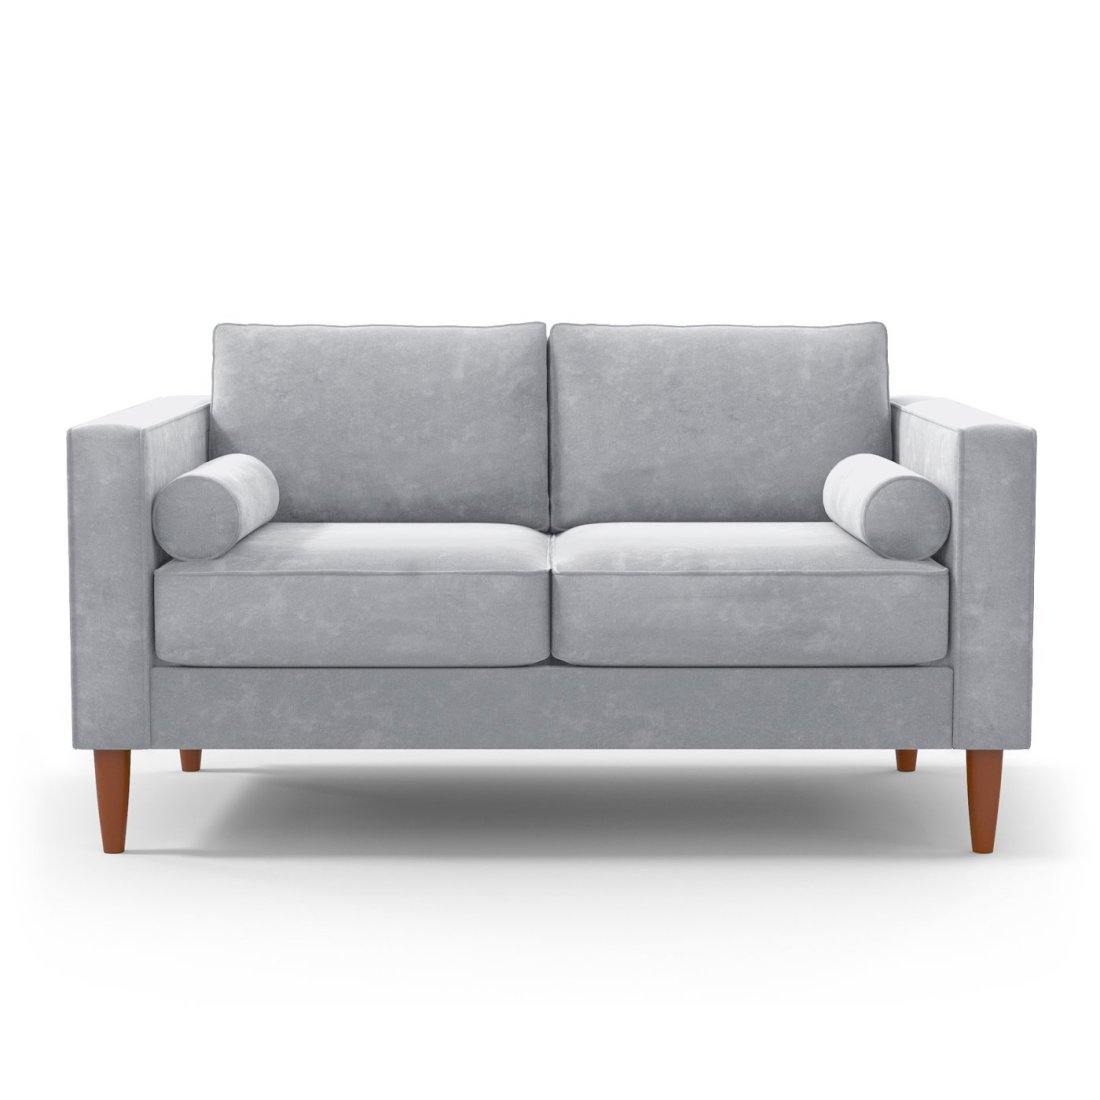 The Best Sofas for Small Spaces - City Chic Decor